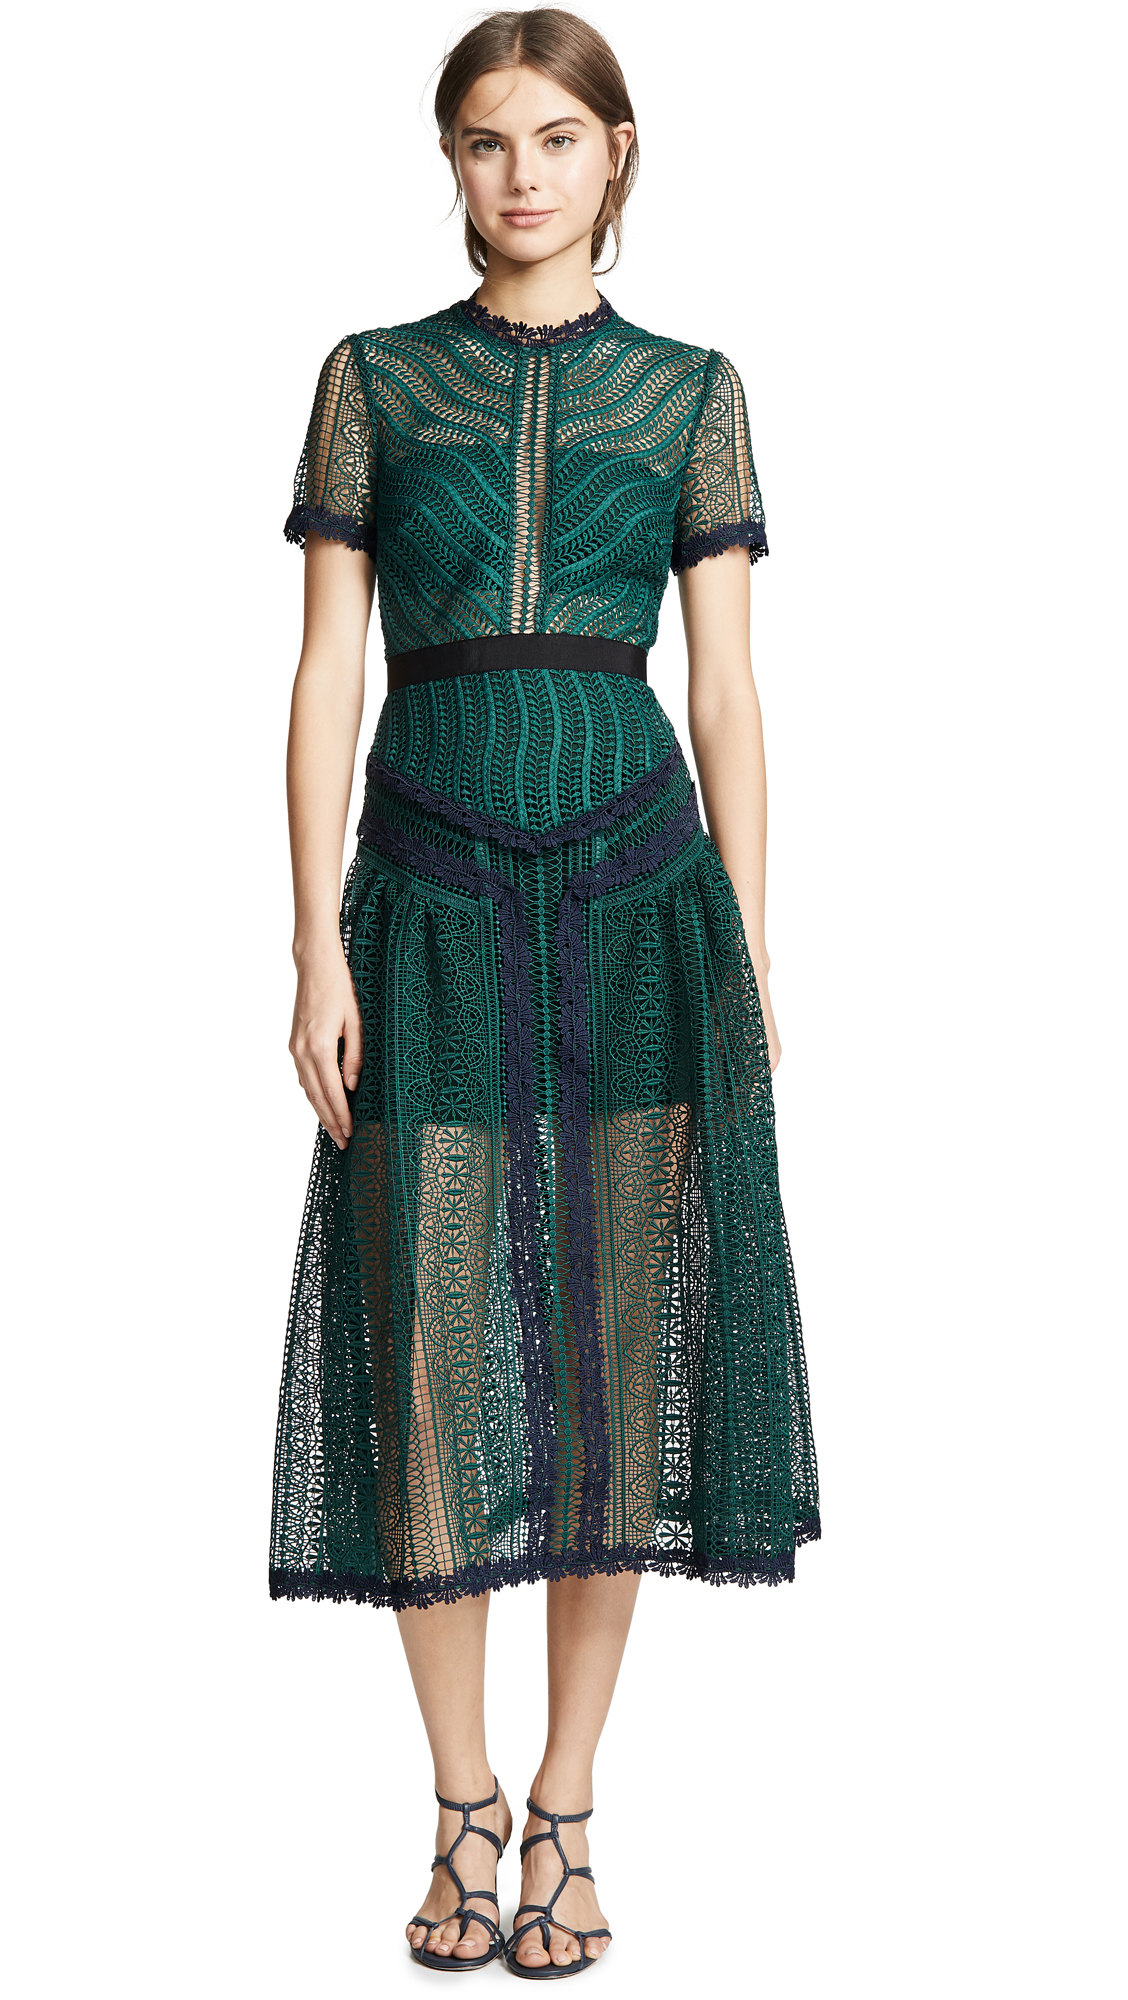 Self Portrait Wave Lace Dress - Green